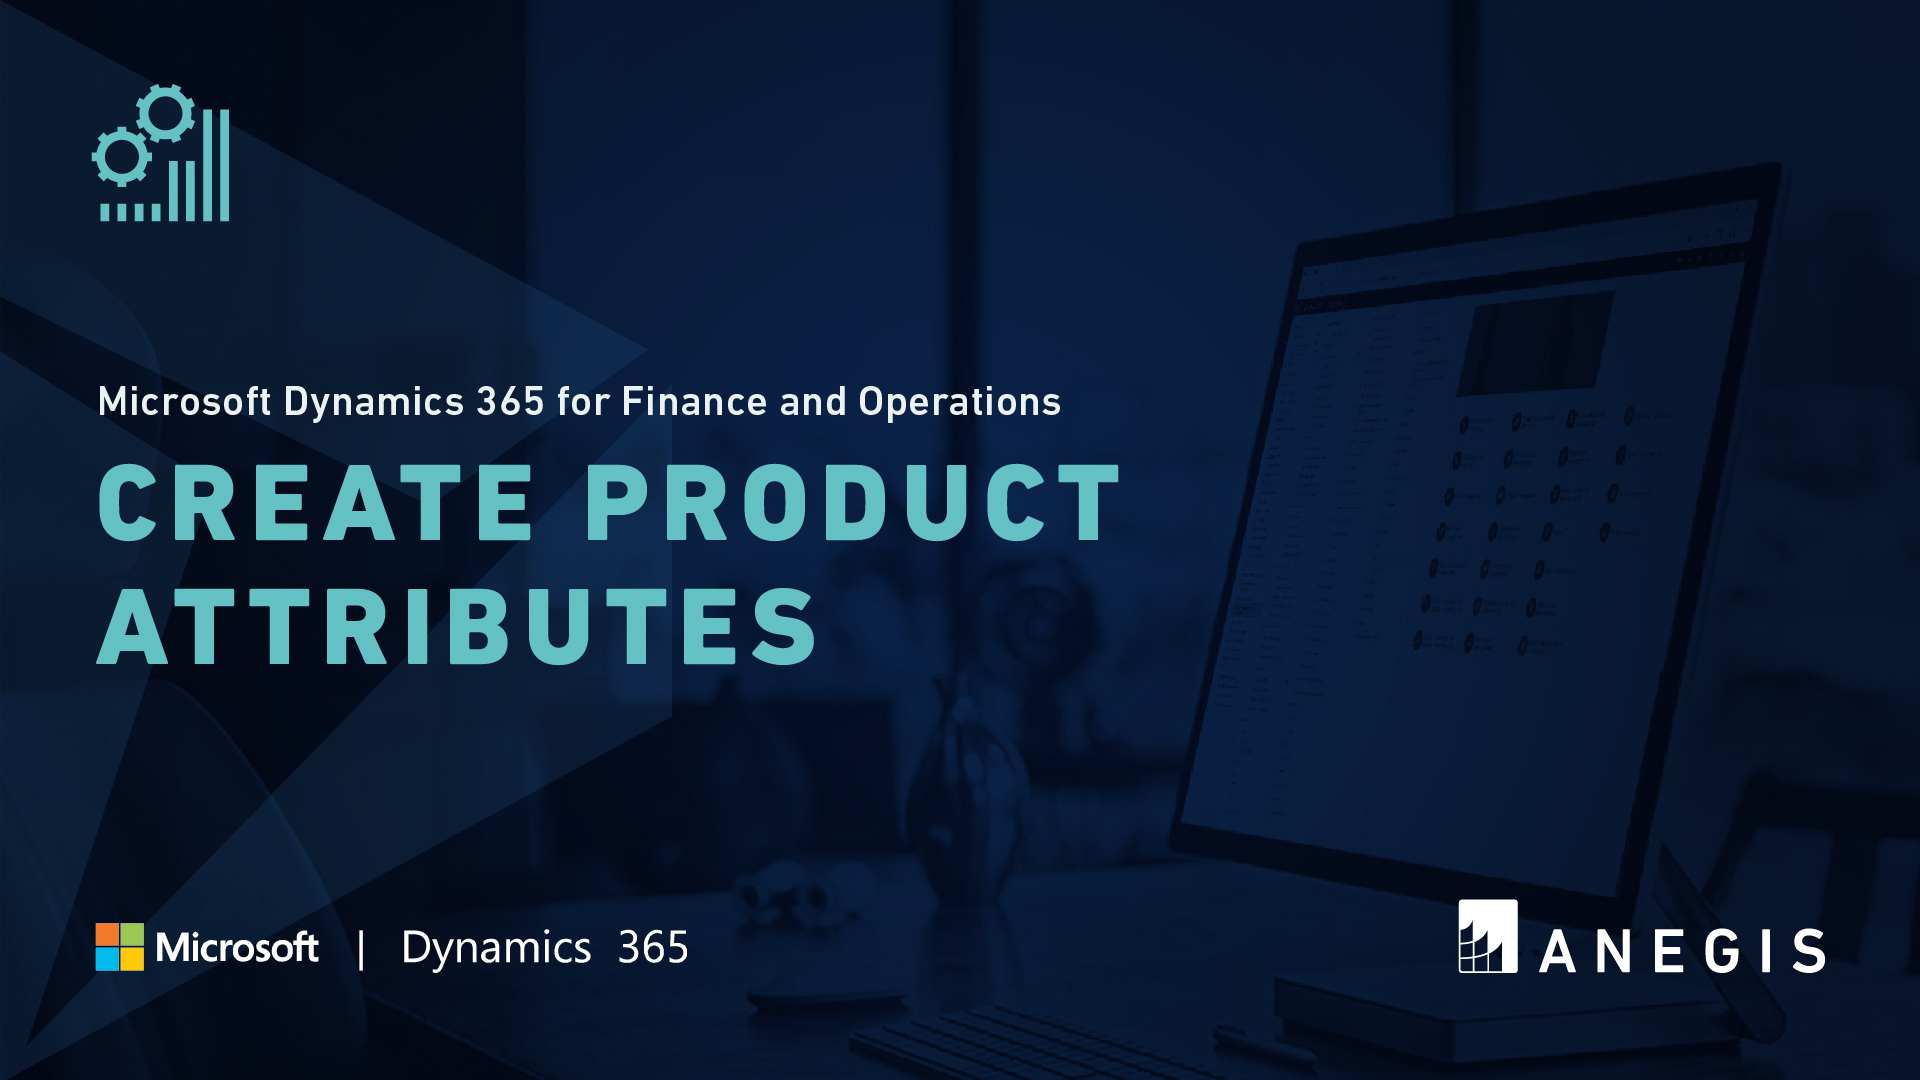 D365 F&O: Create Product Attributes